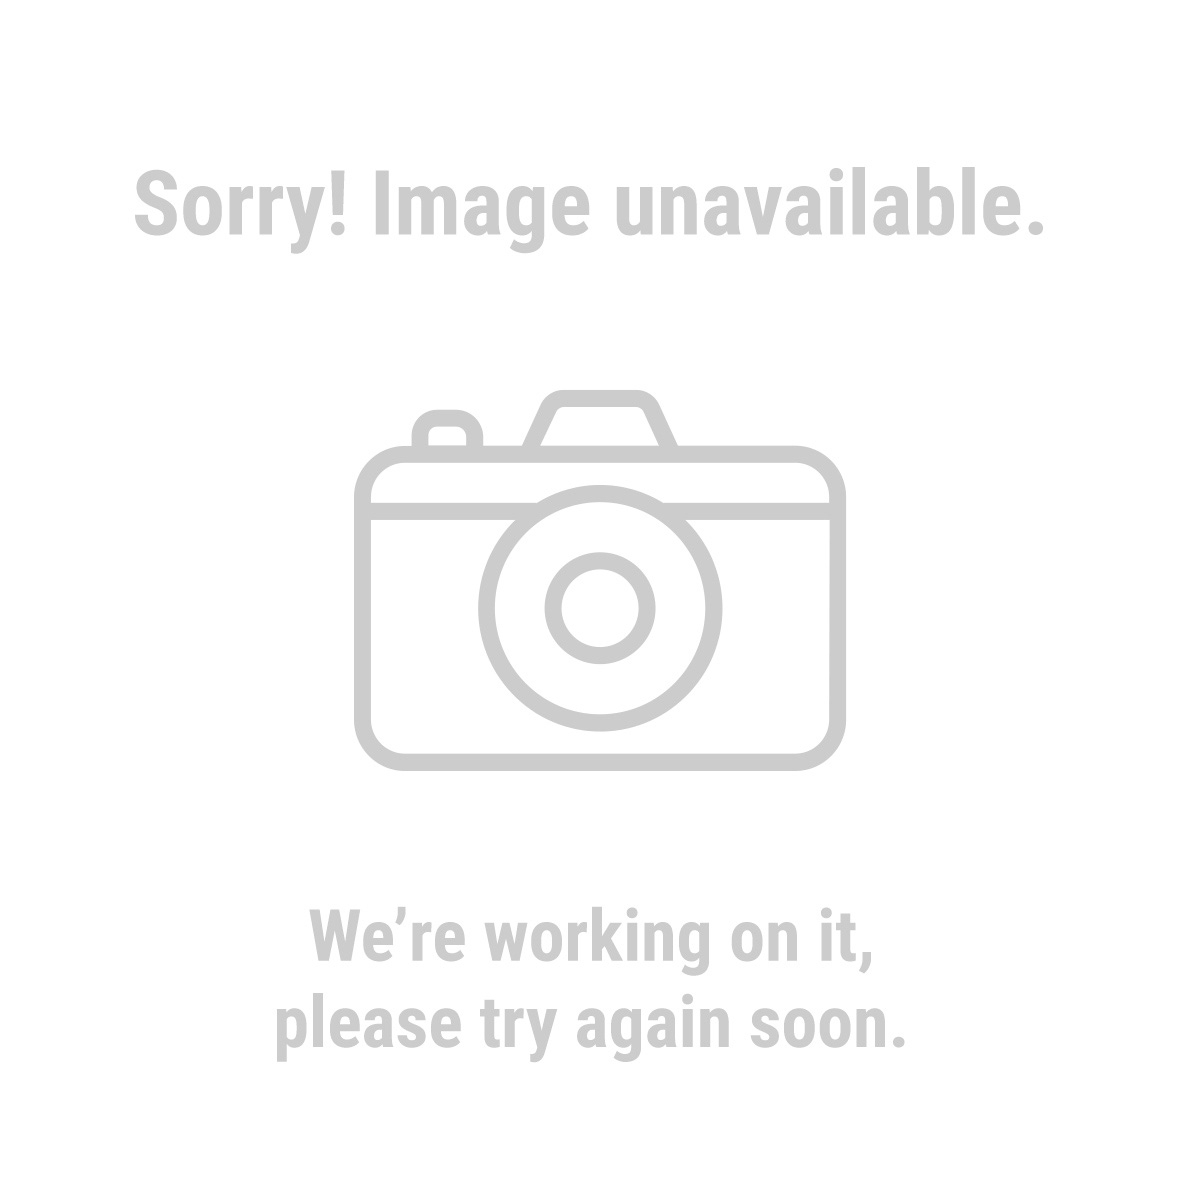 HFT 63155 37 in. to 80 in. Full-Motion TV Wall Mount